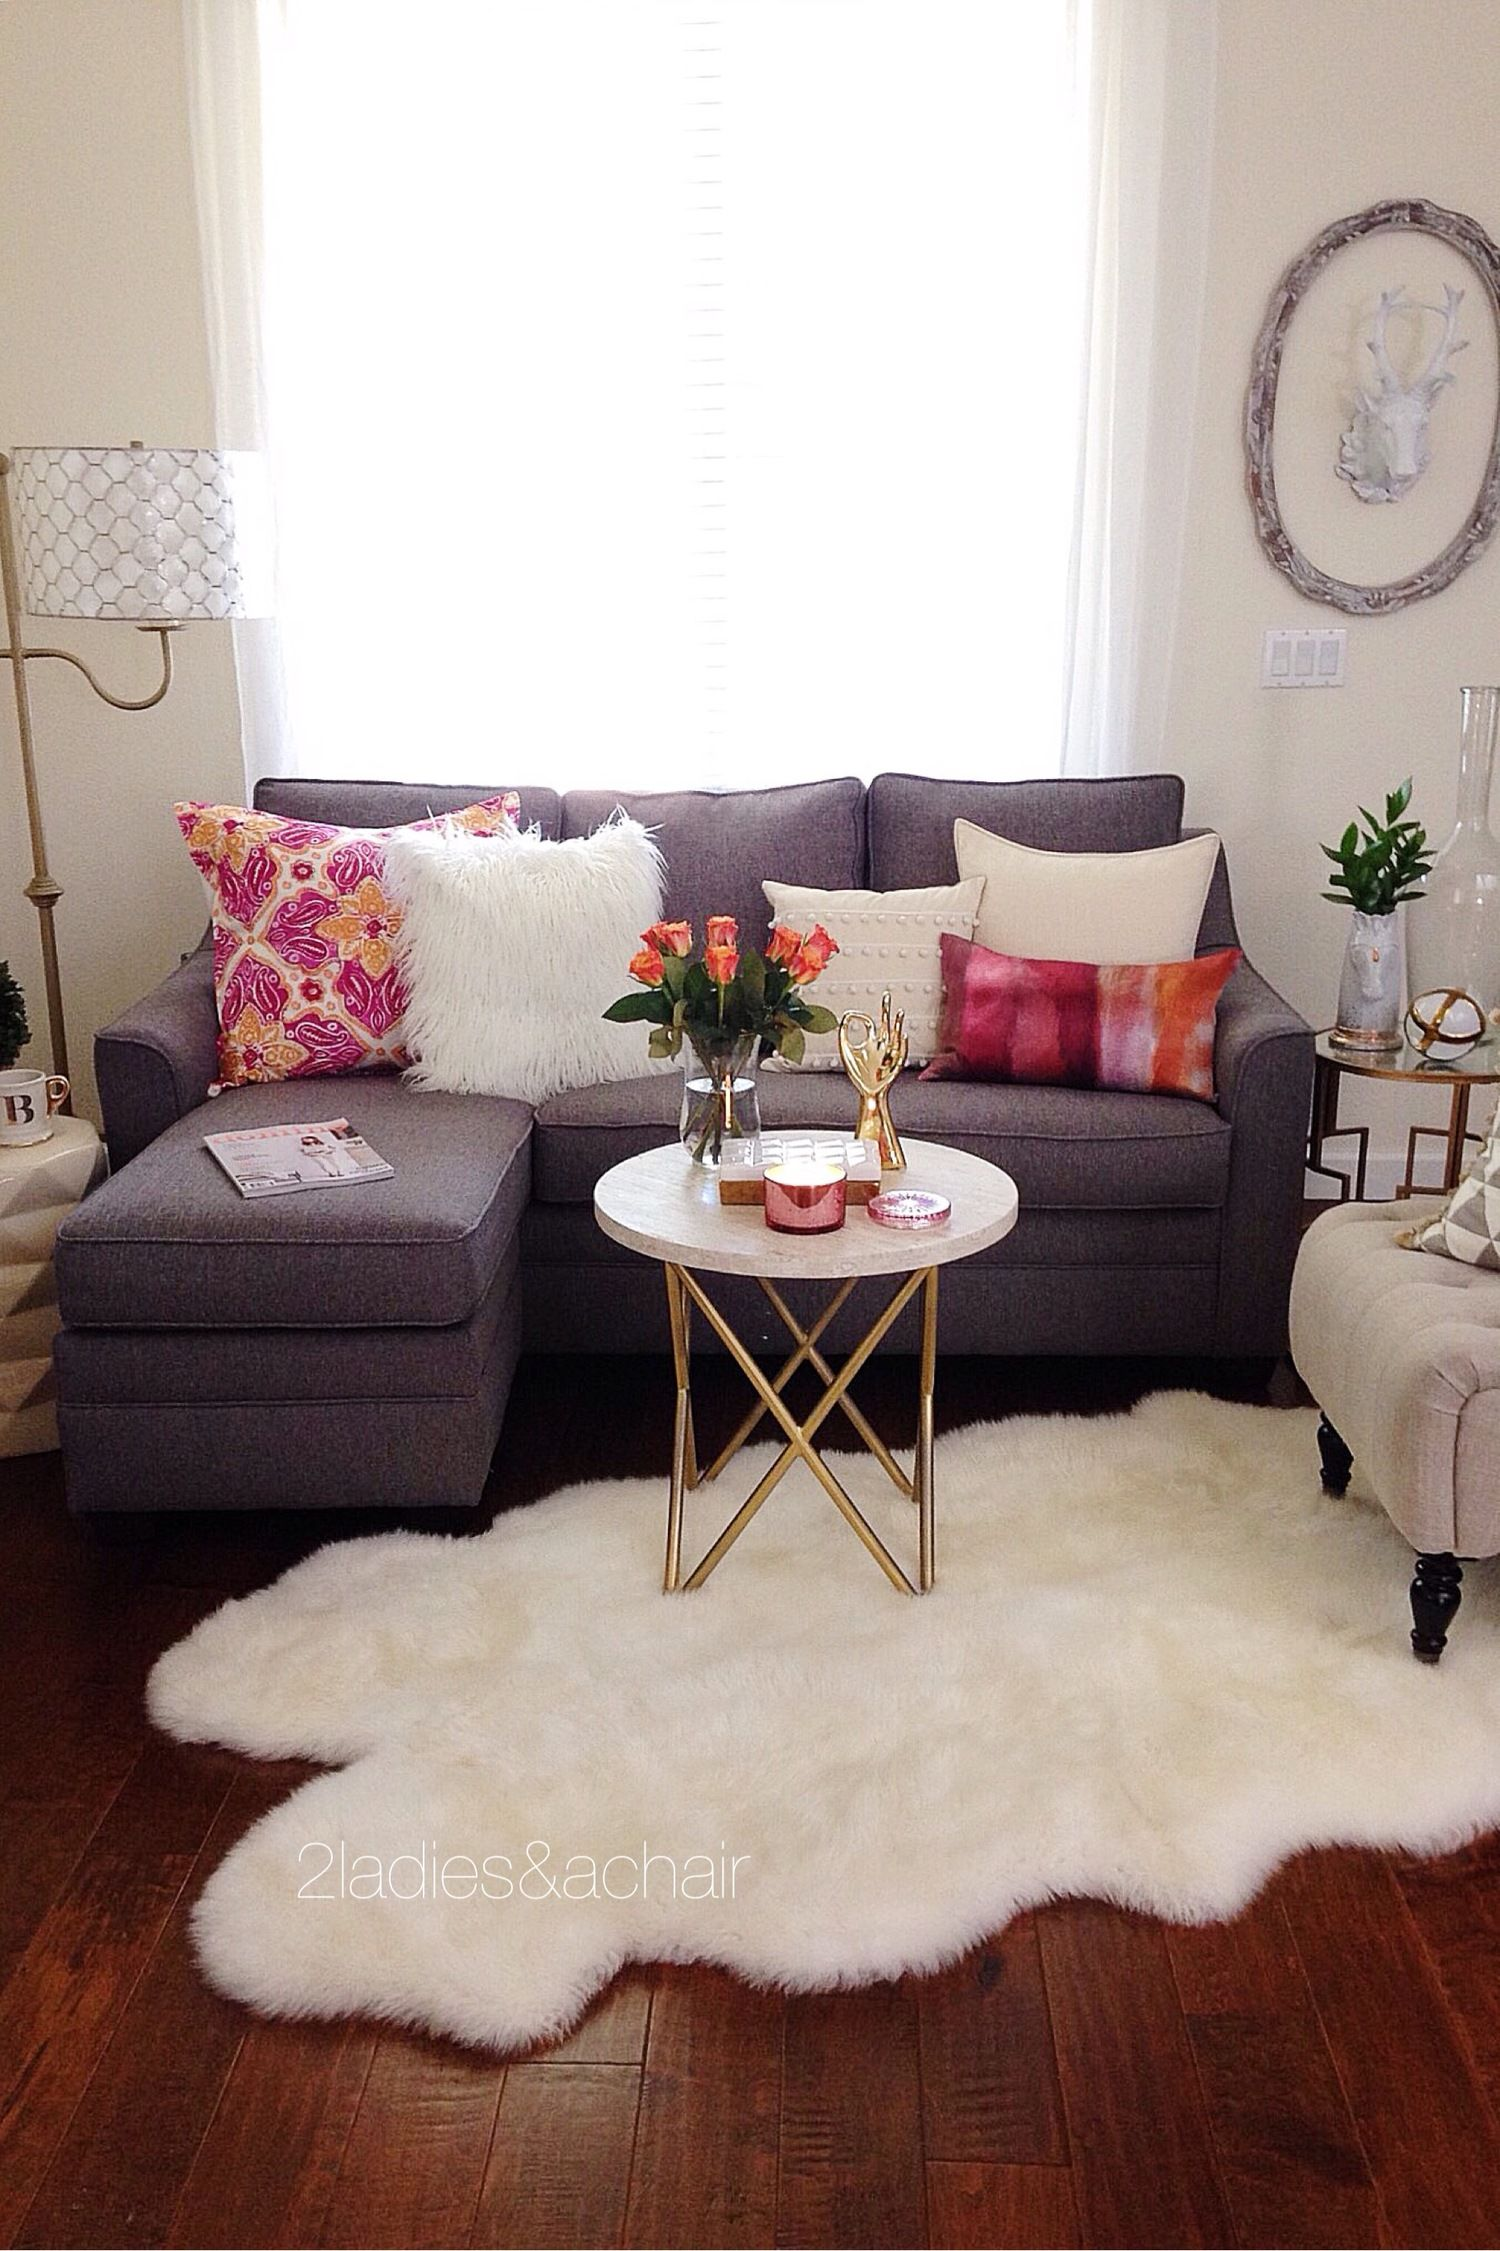 Decorating With Bright Colors 2 Ladies A Chair Apartment Decor Inspiration First Apartment Decorating Small Apartment Living Room